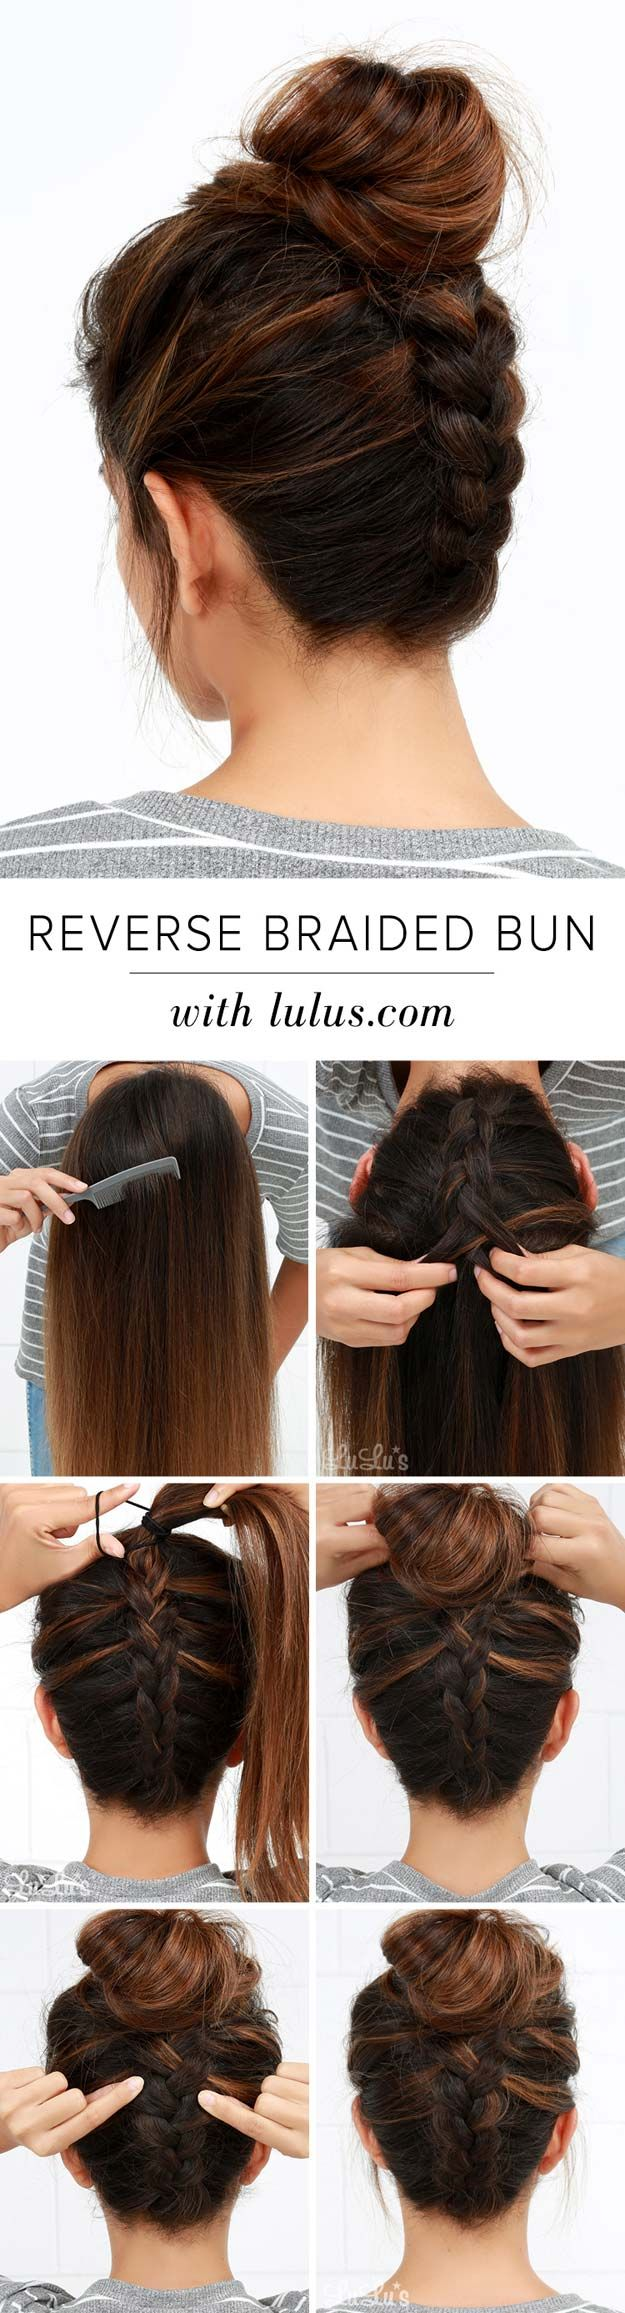 Tremendous 1000 Ideas About Easy Casual Hairstyles On Pinterest Messy Hairstyles For Women Draintrainus